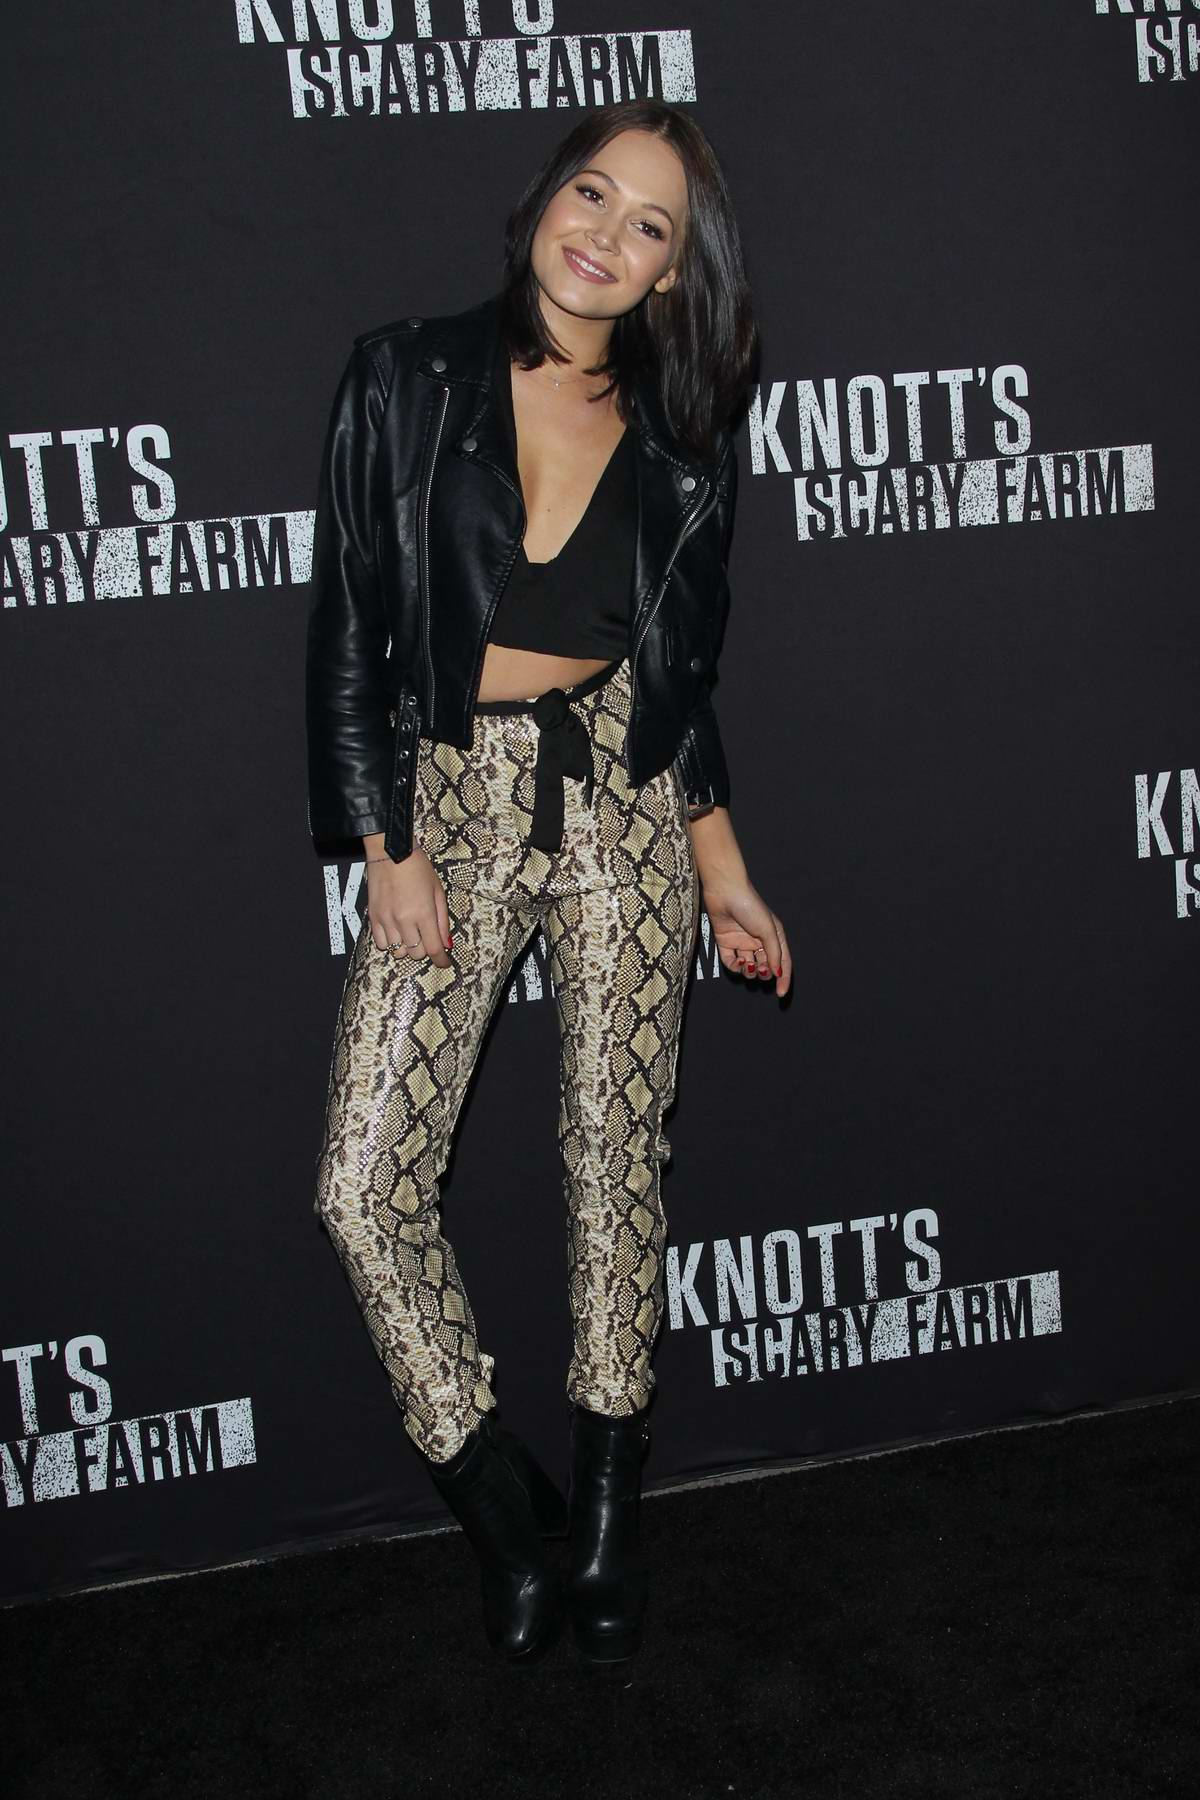 Kelli Berglund at Knott's Scary Farm Celebrity Night in Buena Park, California